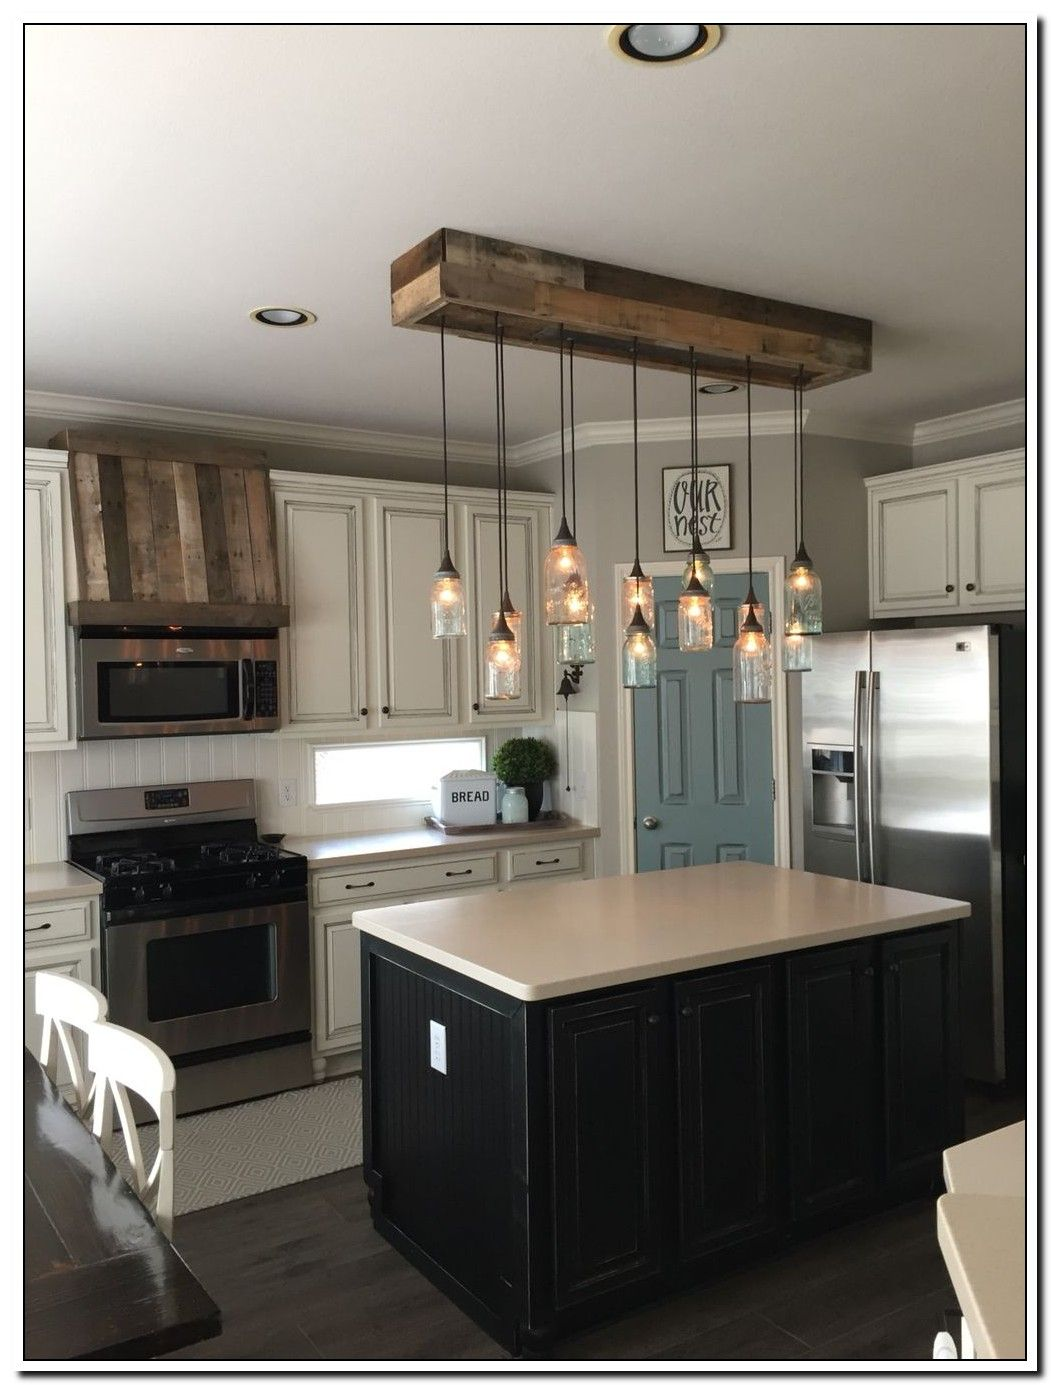 71 Reference Of Kitchen Farmhouse Island Pendant Lights In 2020 Farmhouse Kitchen Lighting Farmhouse Kitchen Colors Rustic Kitchen